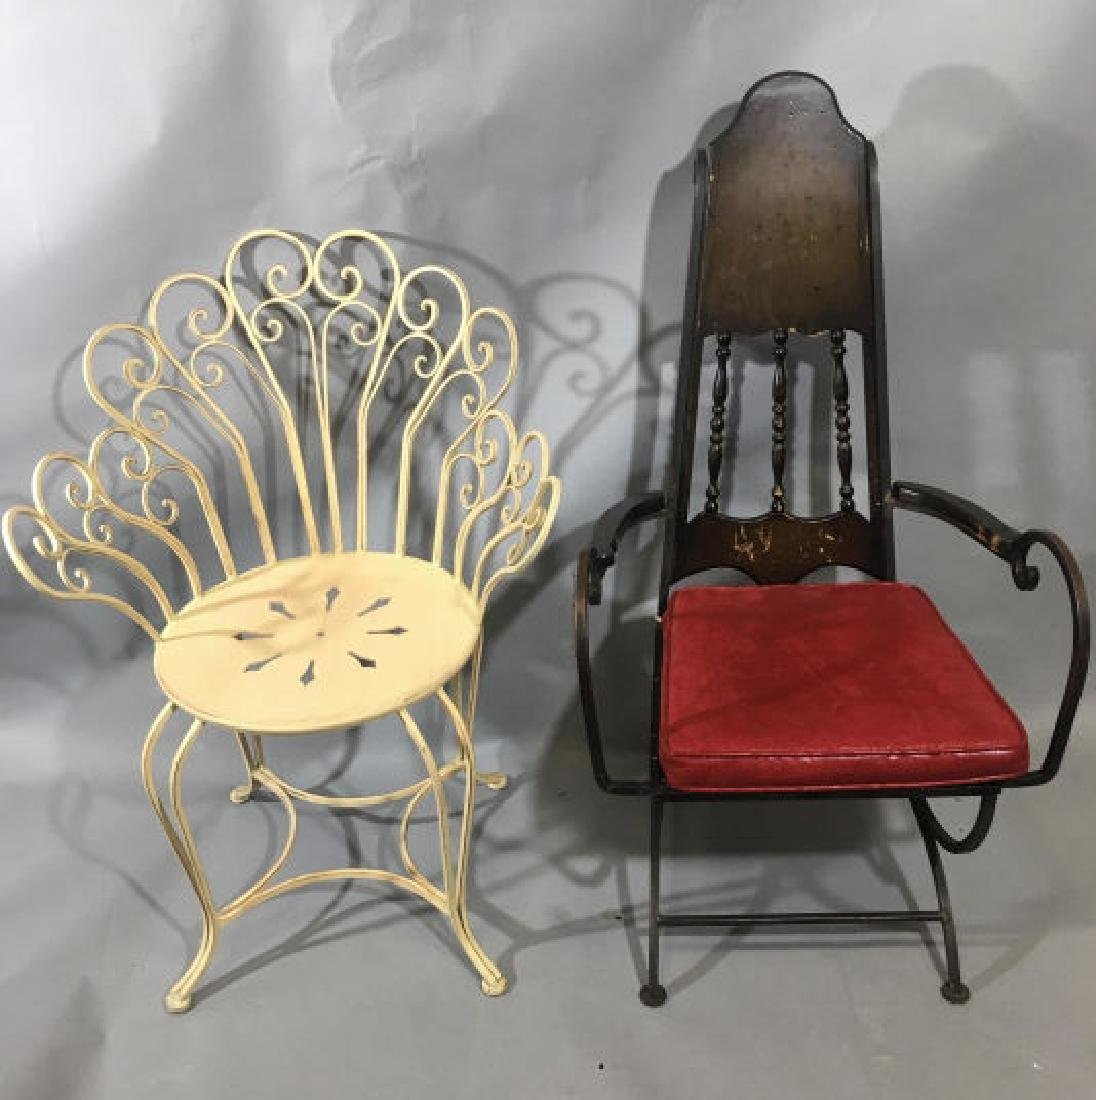 2 Antique & Vintage Style French Metal Chairs